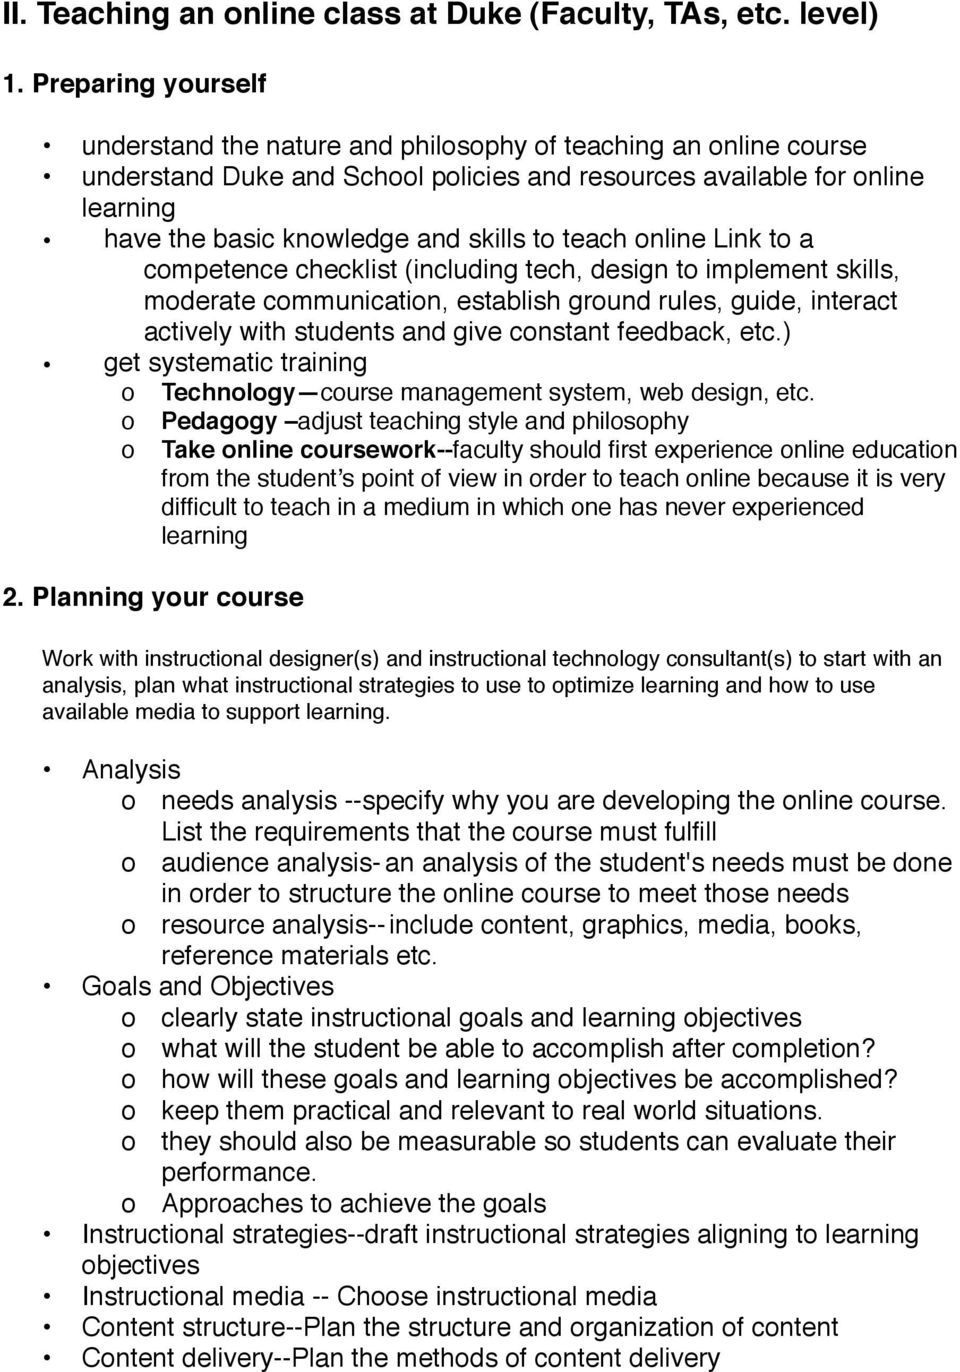 skills to teach online Link to a competence checklist (including tech, design to implement skills, moderate communication, establish ground rules, guide, interact actively with students and give